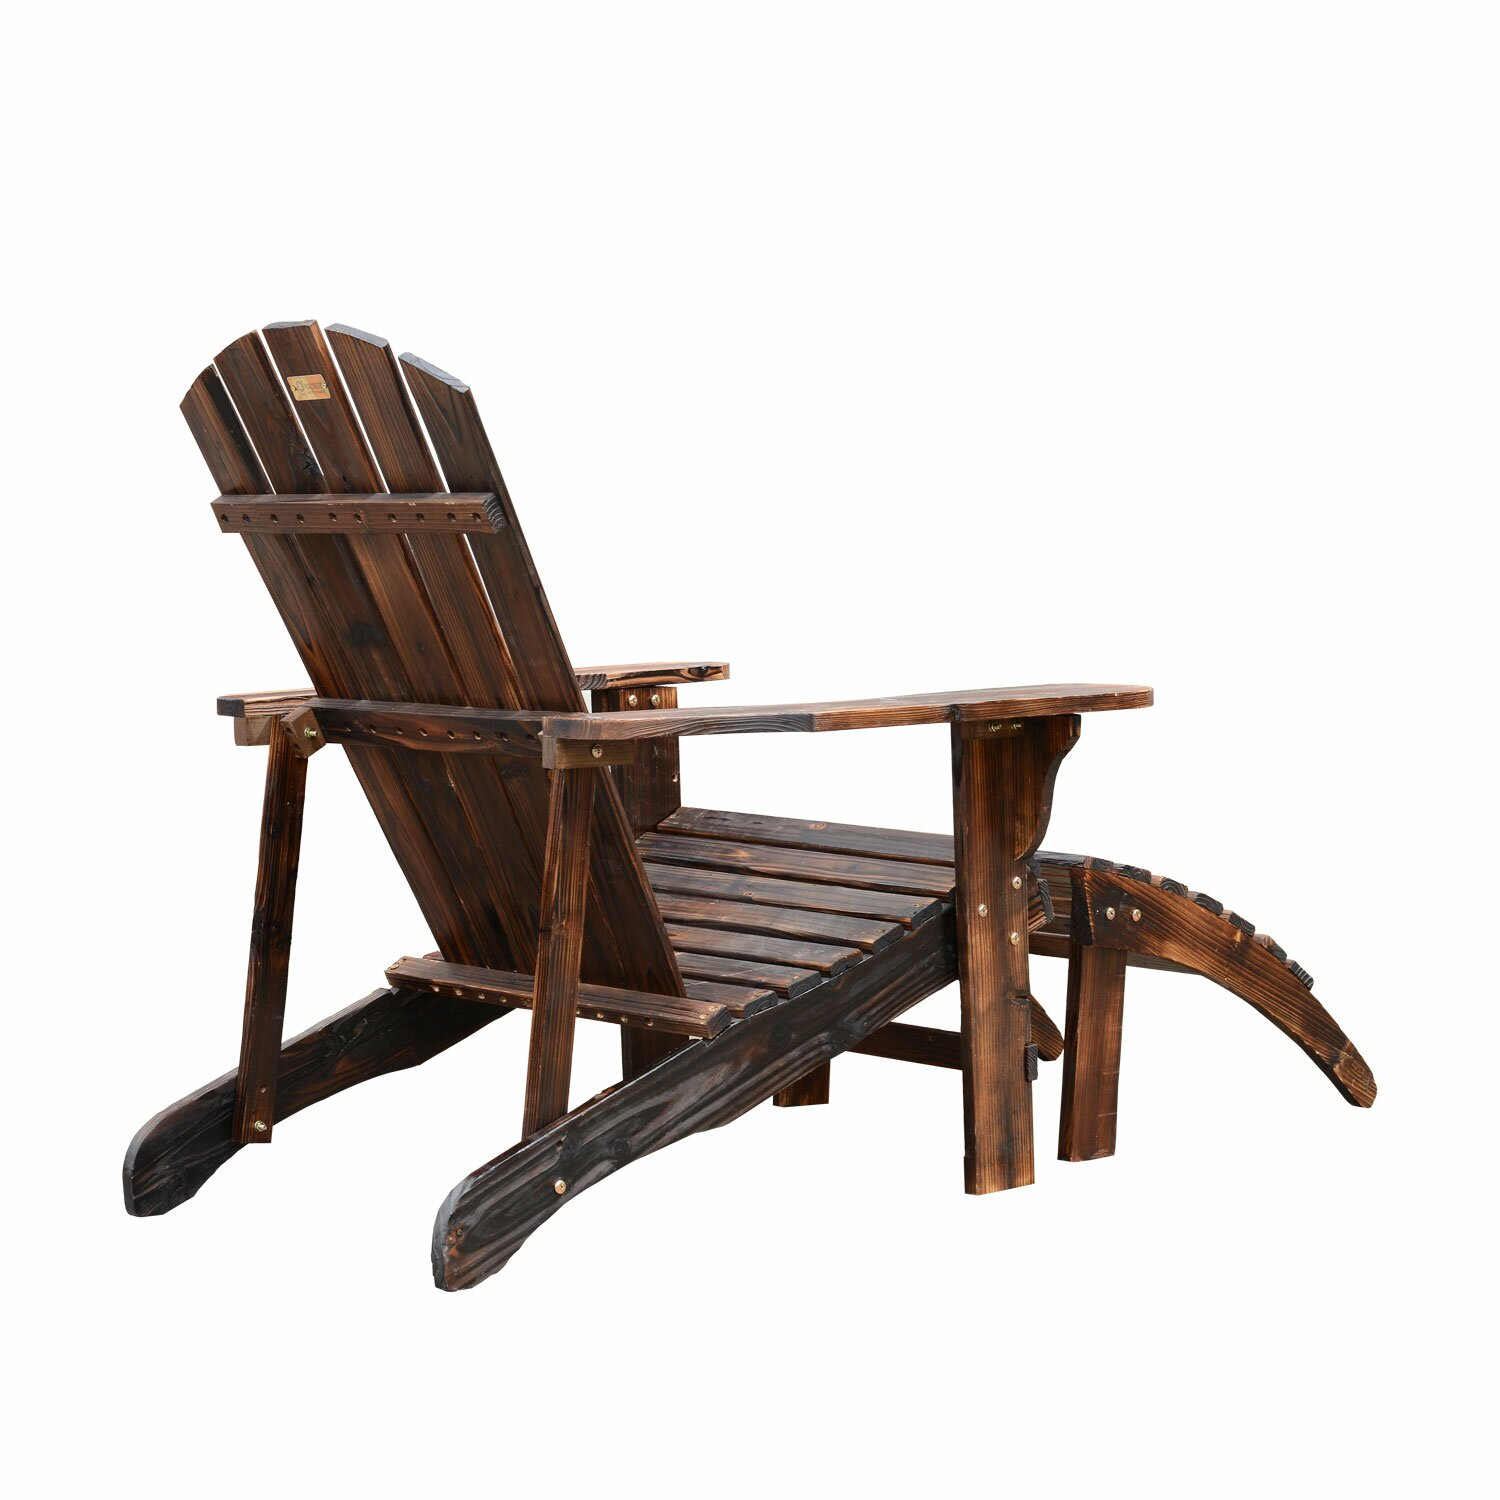 Outsunny Adirondack Chair With Ottoman Reviews Wayfair